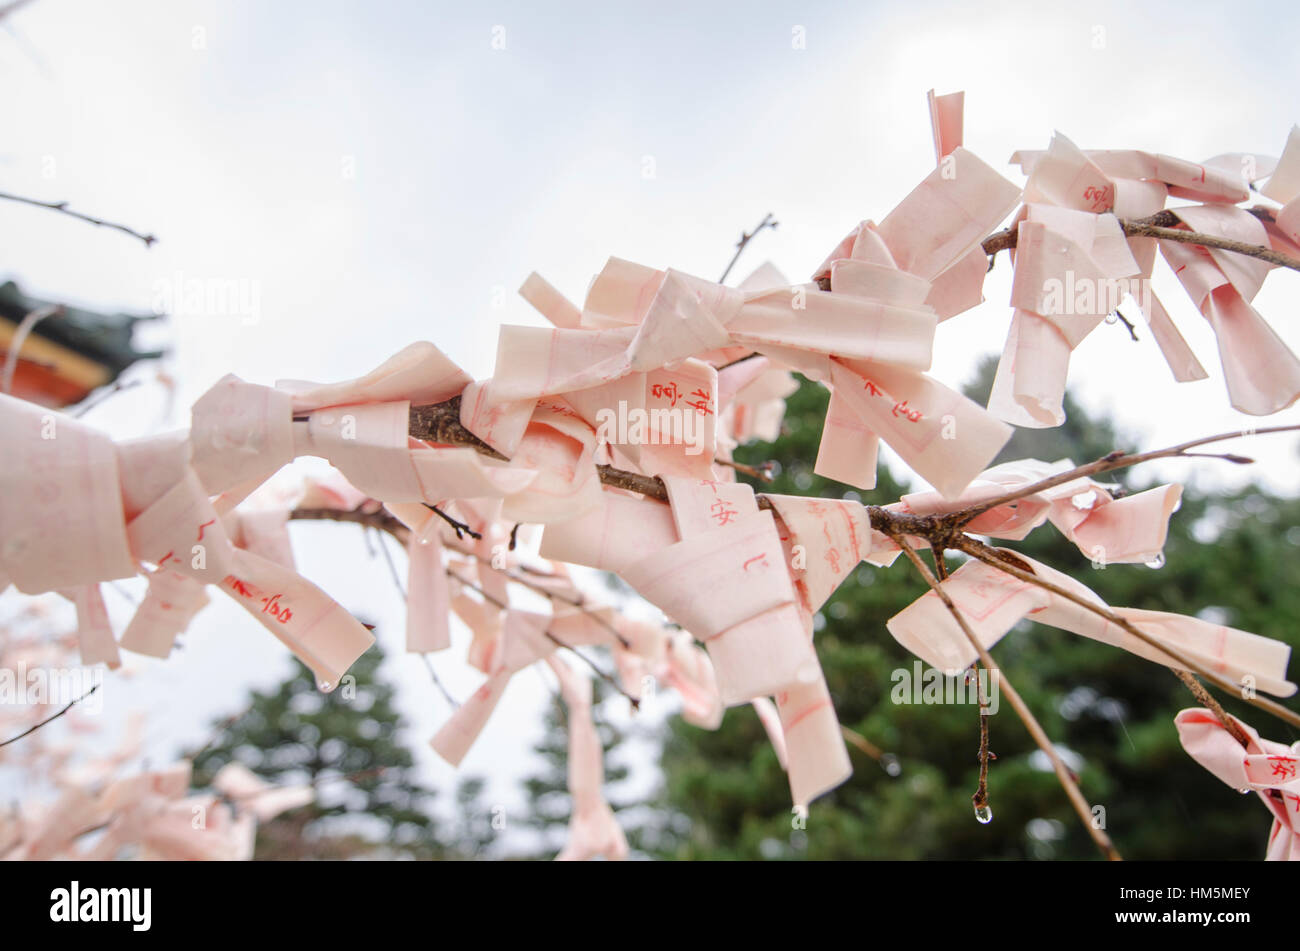 Low angle view of fortune papers tied on twigs against sky - Stock Image